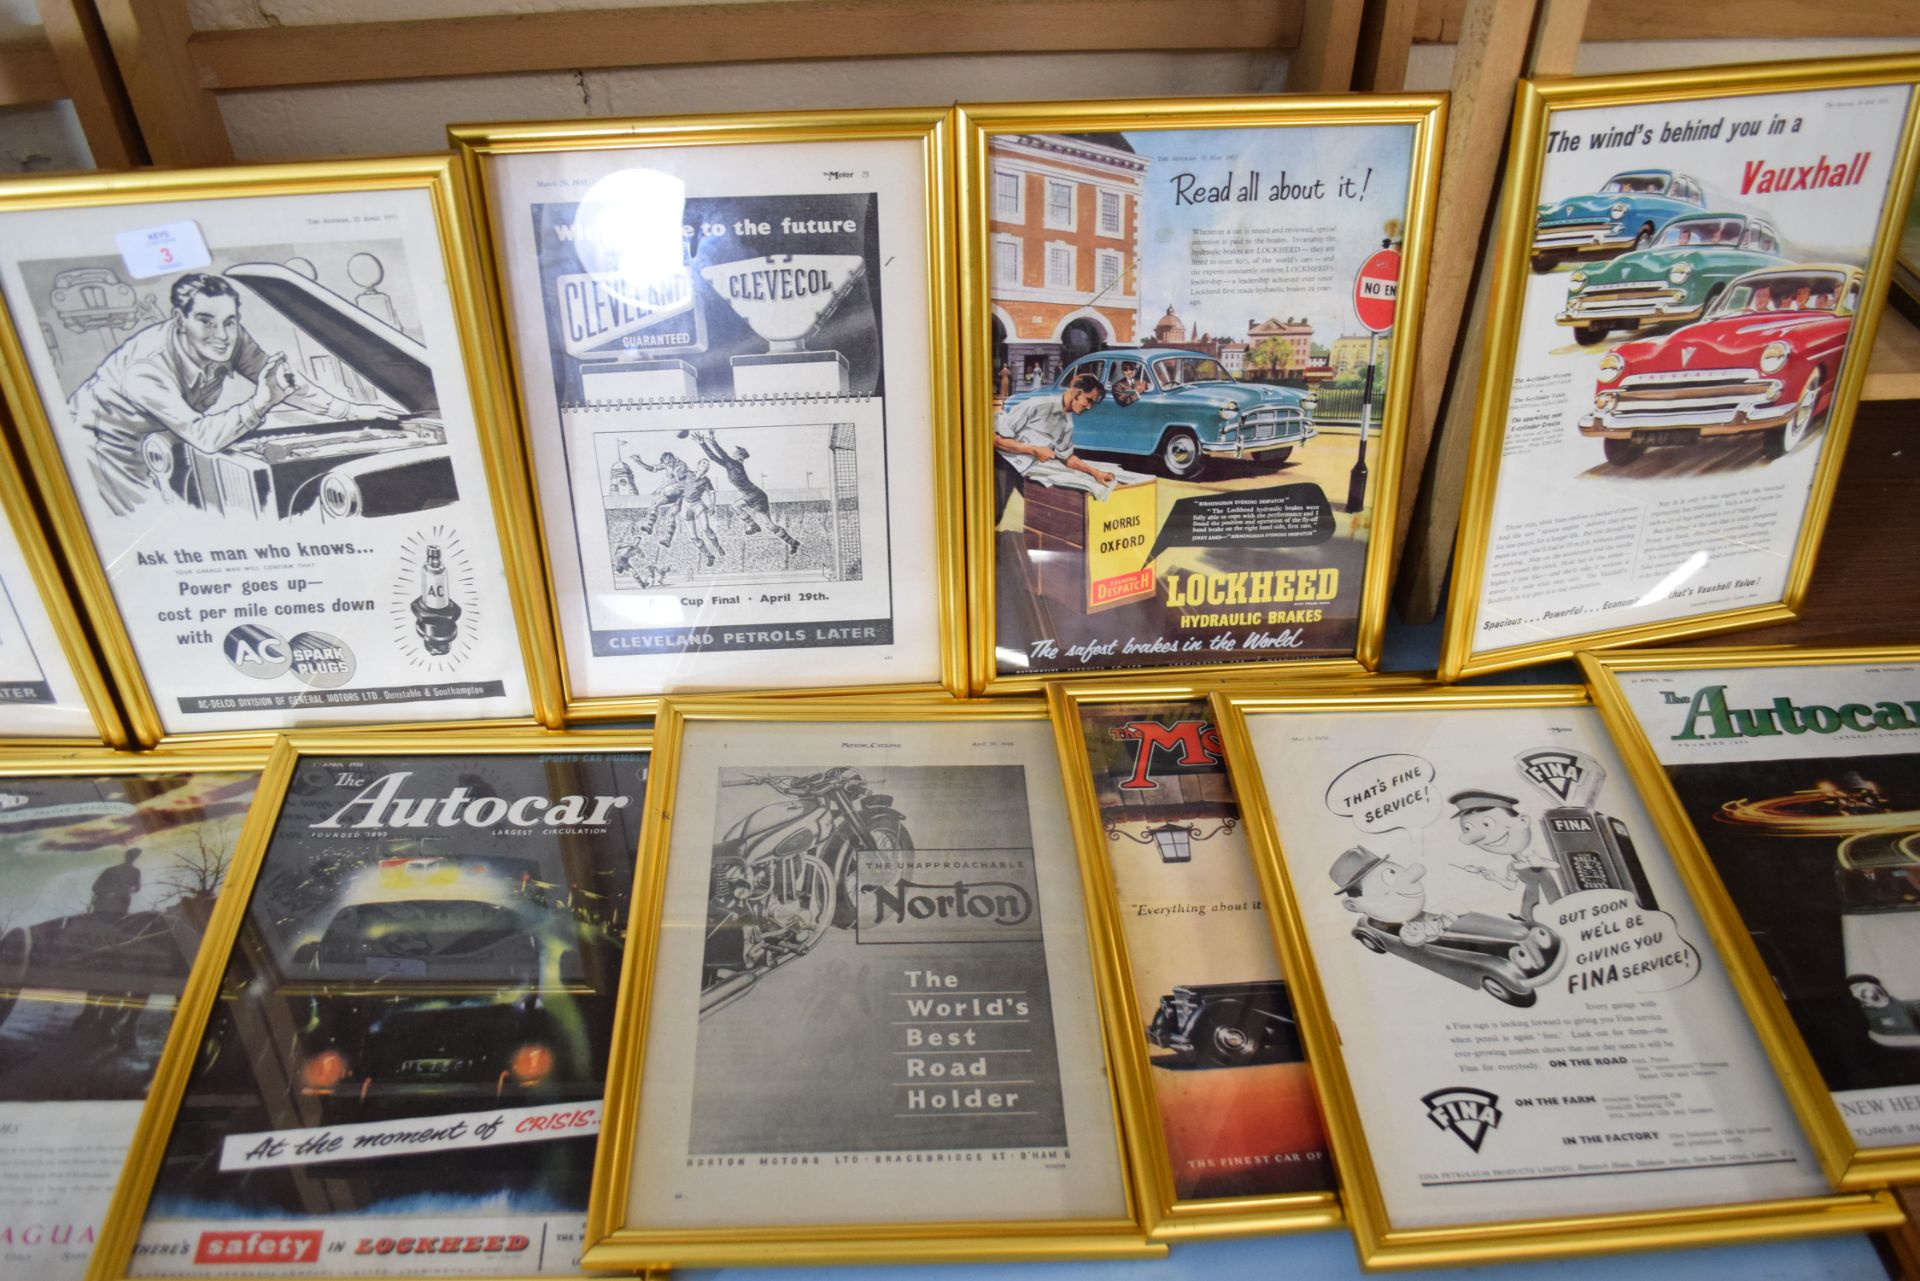 Large quantity of framed magazine advertising prints from The Autocar and The Motor magazines to - Image 3 of 3